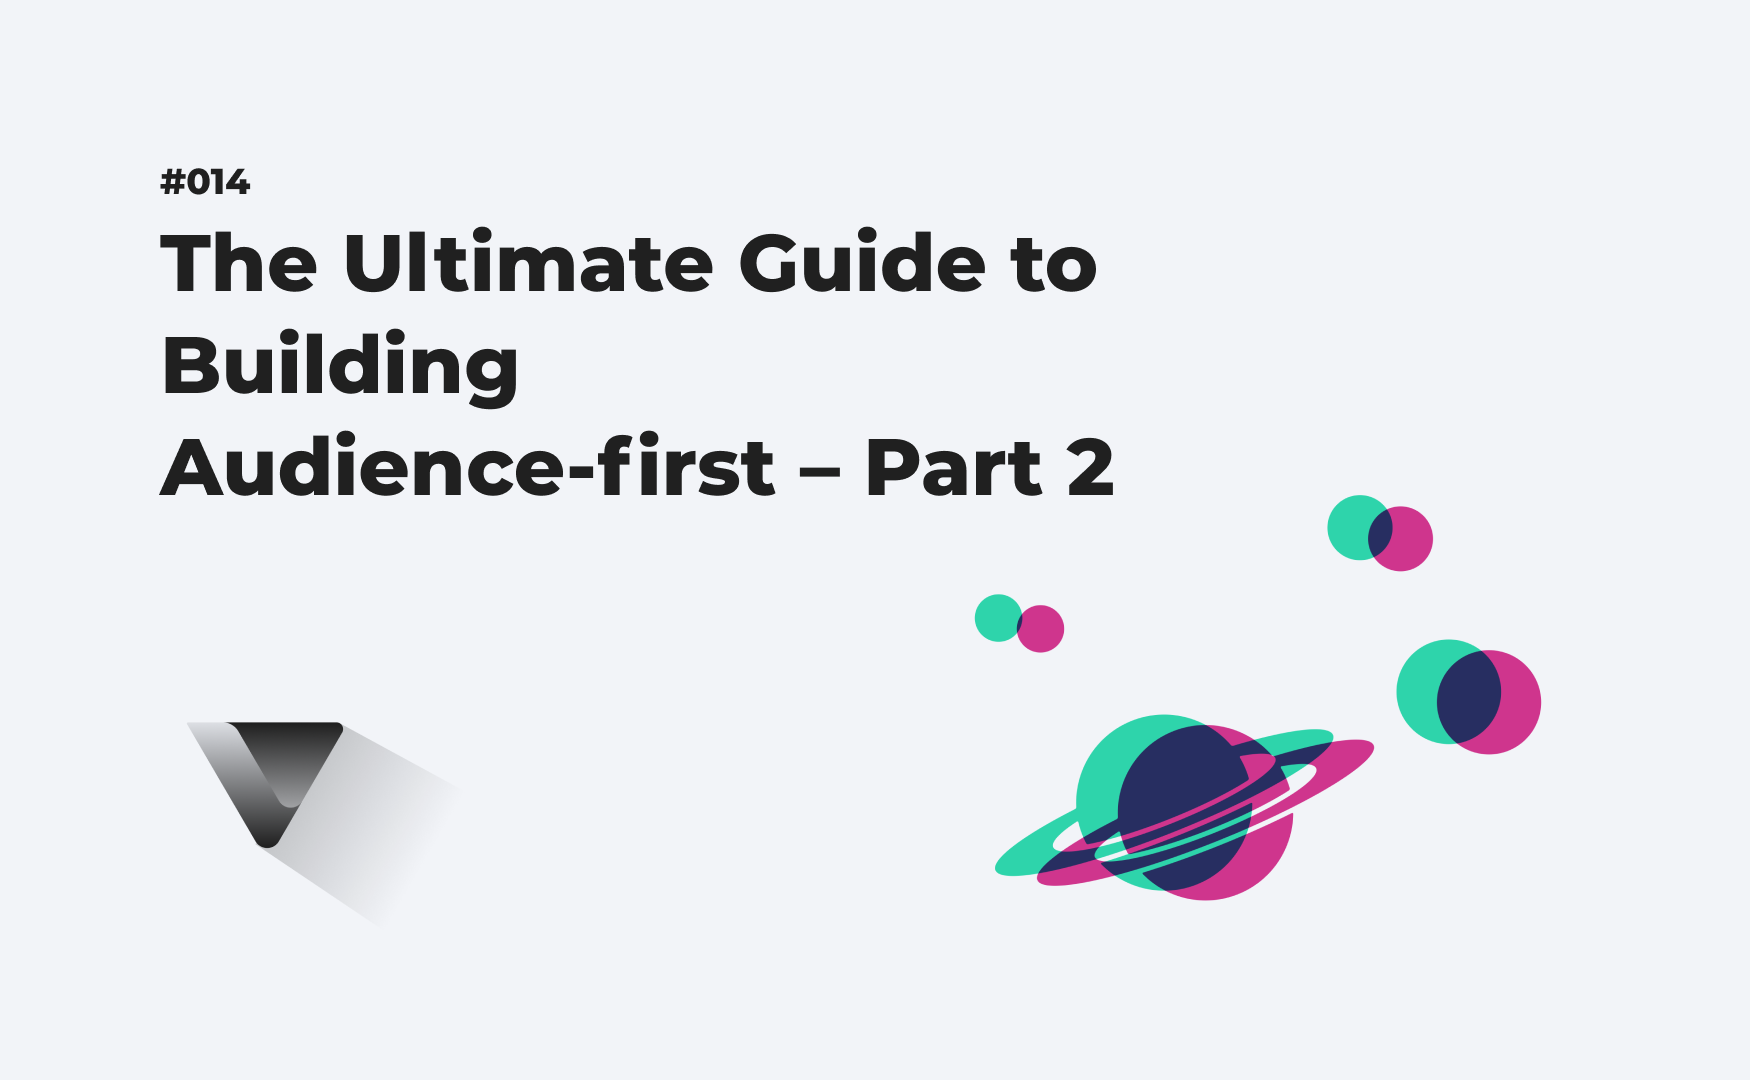 The Ultimate Guide to Building Audience-first – Part 2